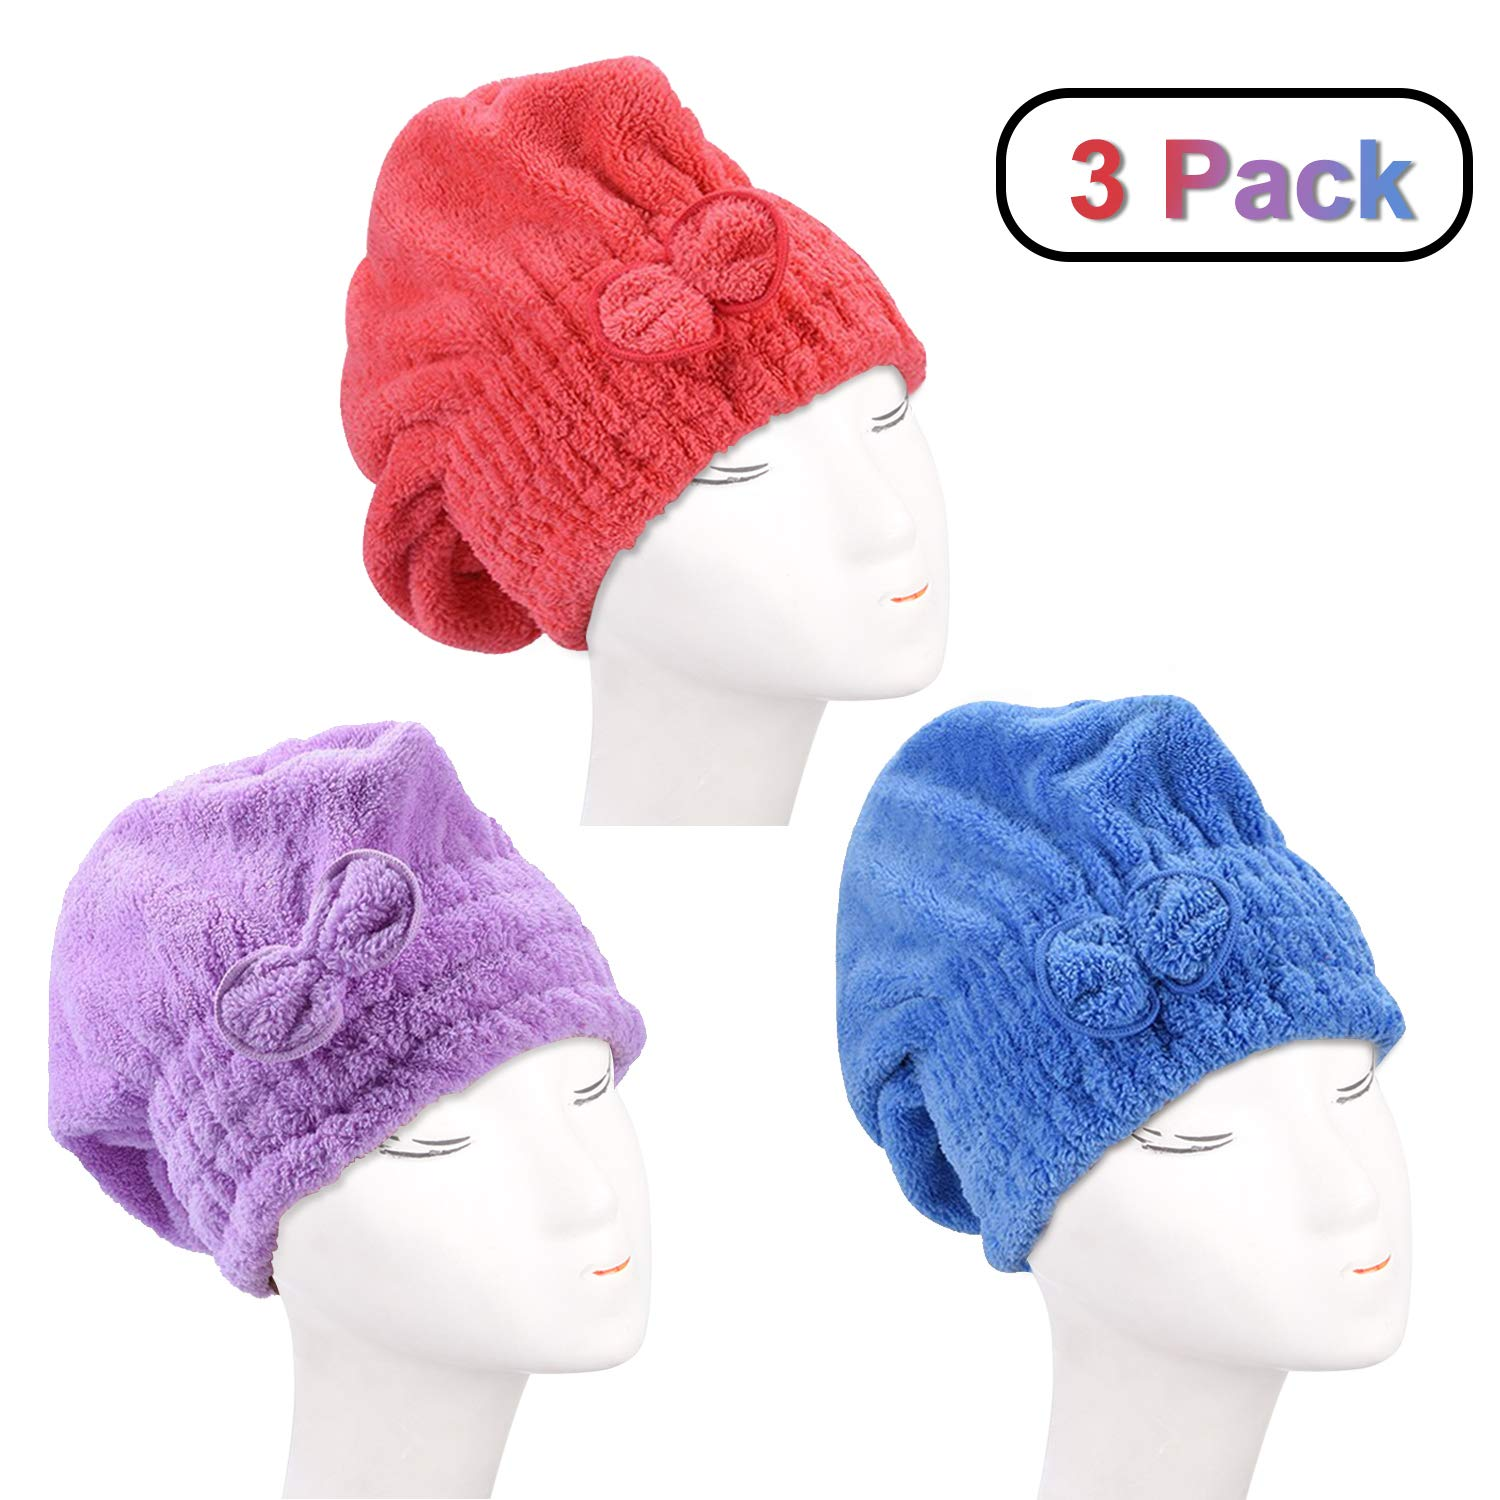 3Pcs Wet Hair Drying CapDee Banna Hair Drying Towels Ultra Absorbent Microfiber Drying Cap (RedBluePurple)